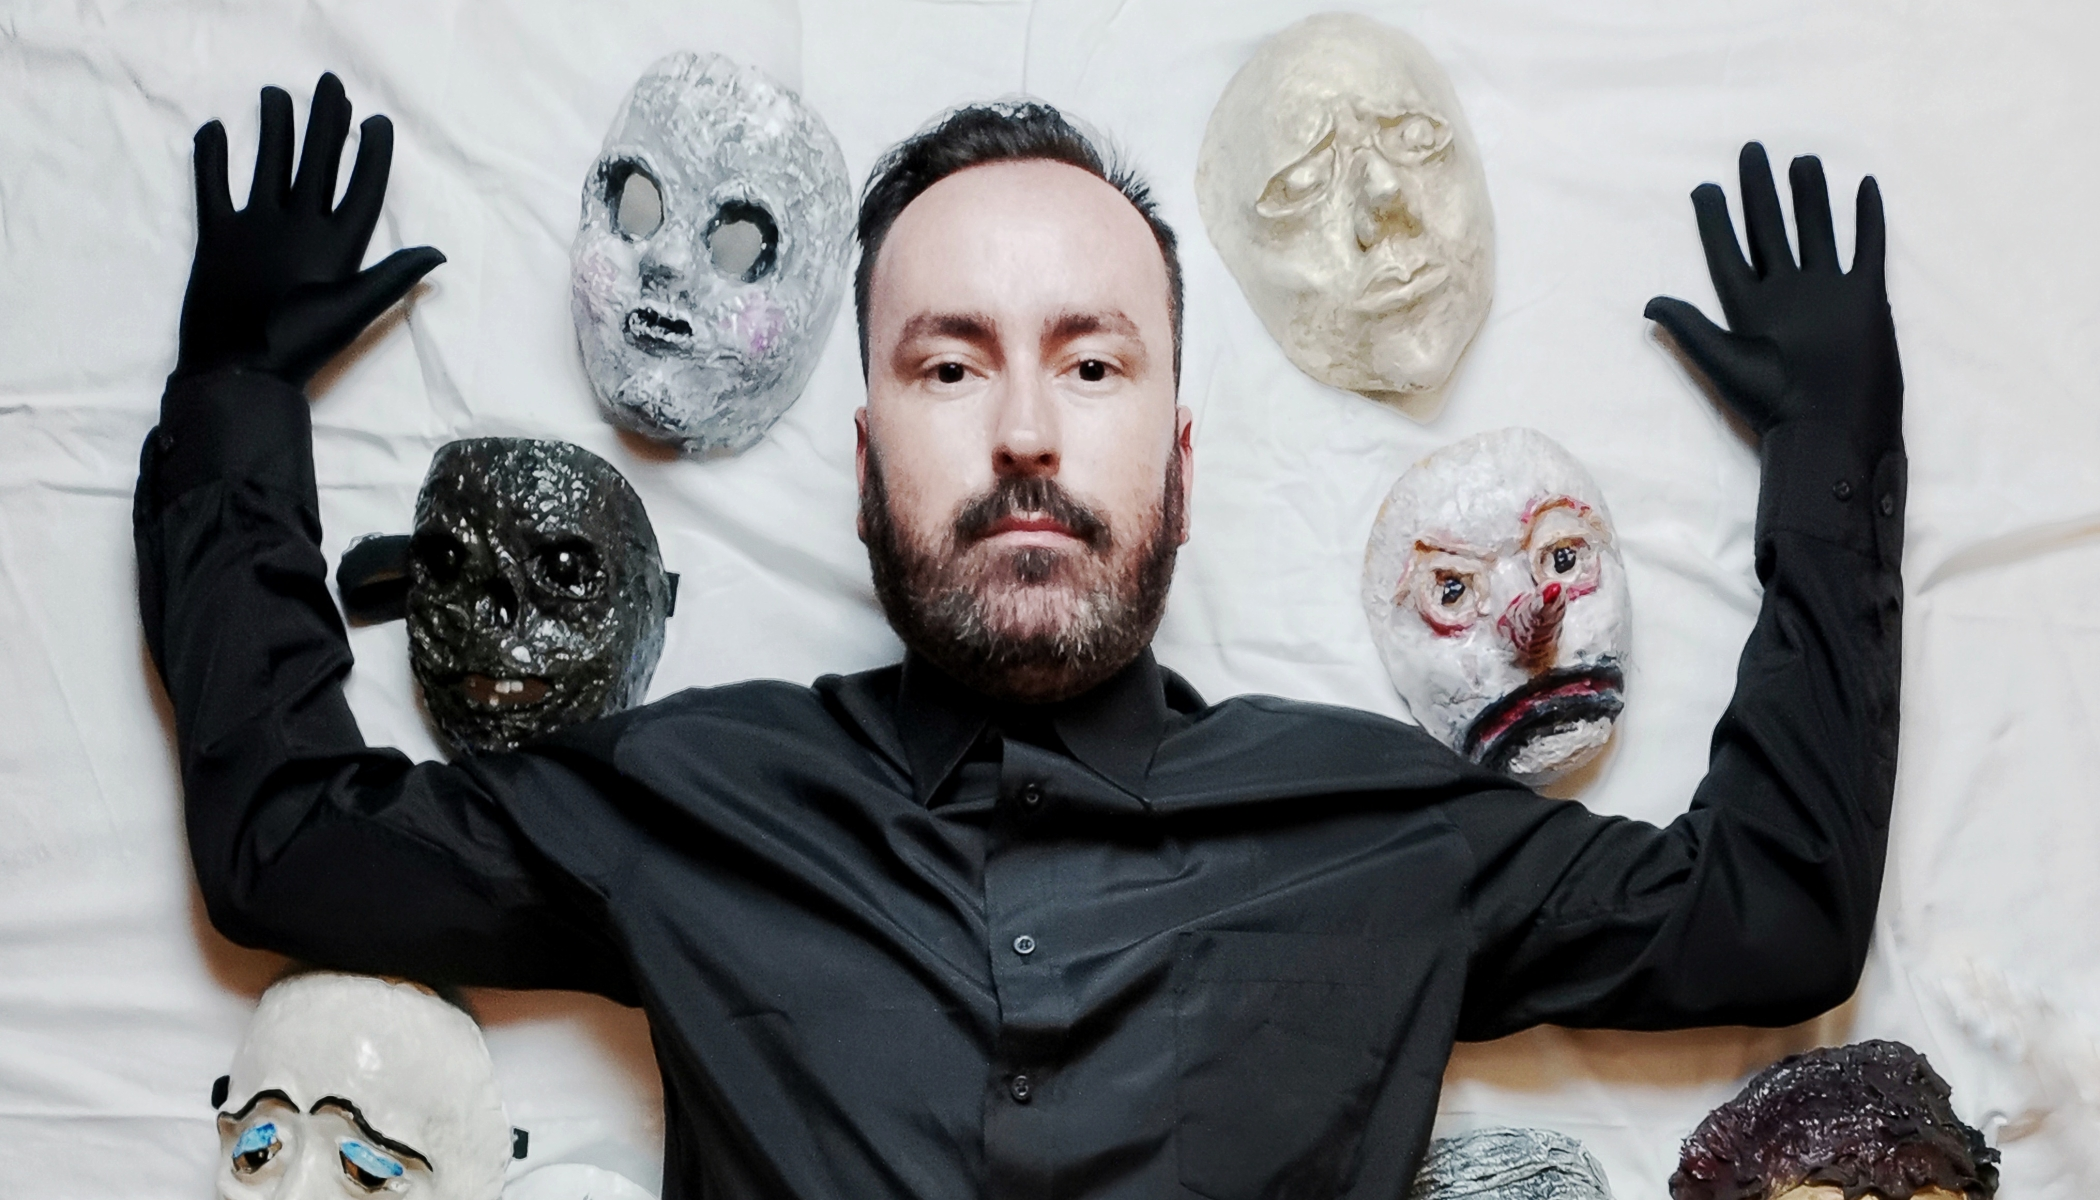 Horror photographer Peter Murín: Masks are the incognito, the mysterious. I shape precisely the expression I desire.